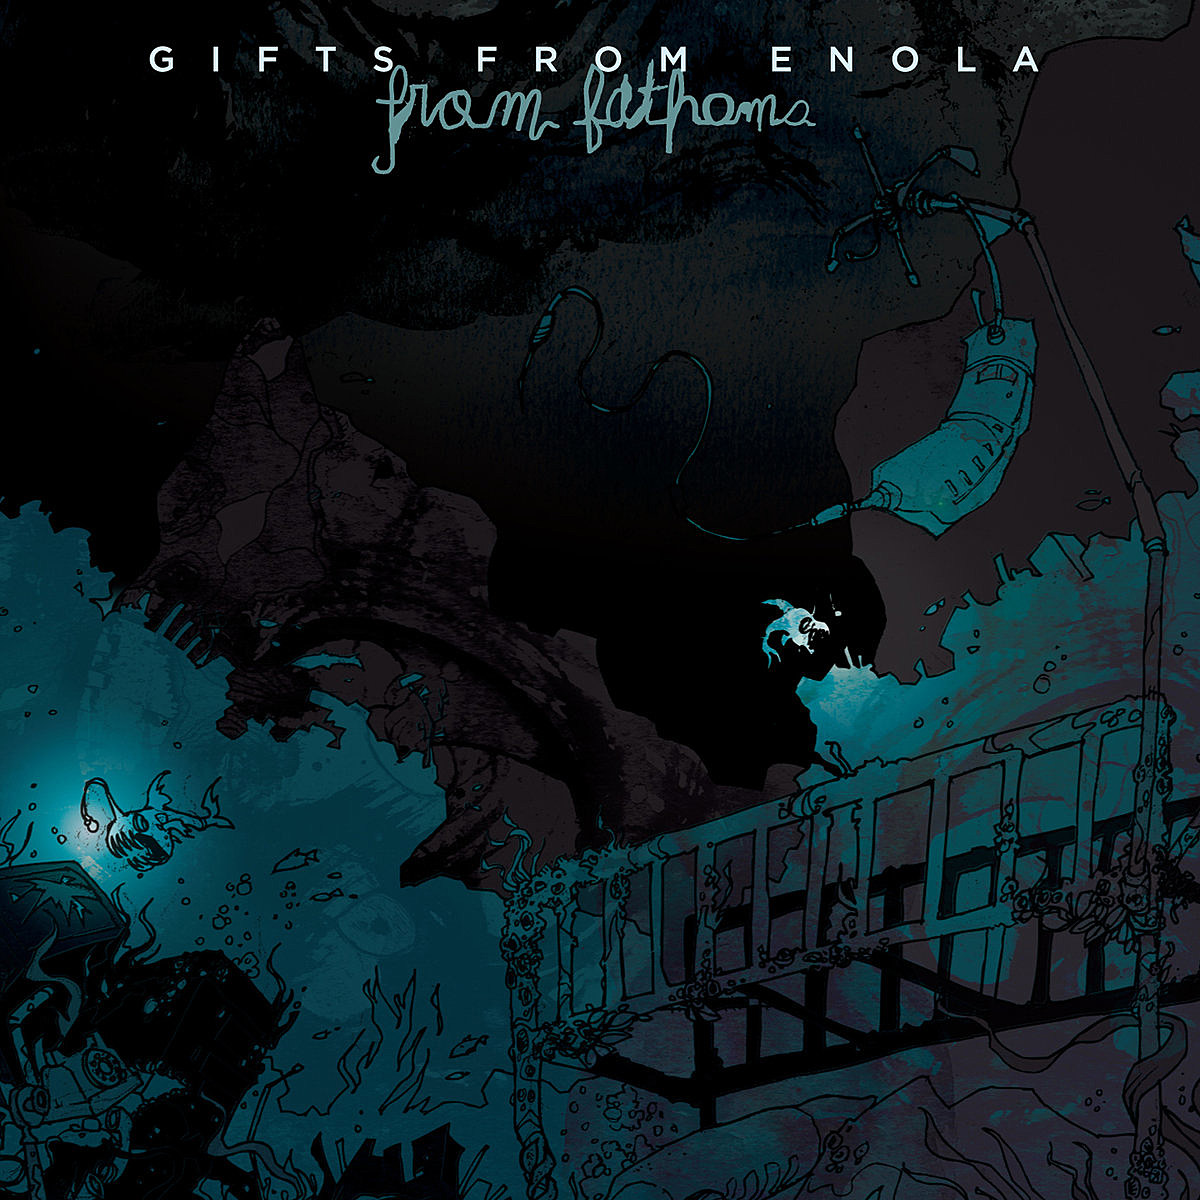 Gifts From Enola